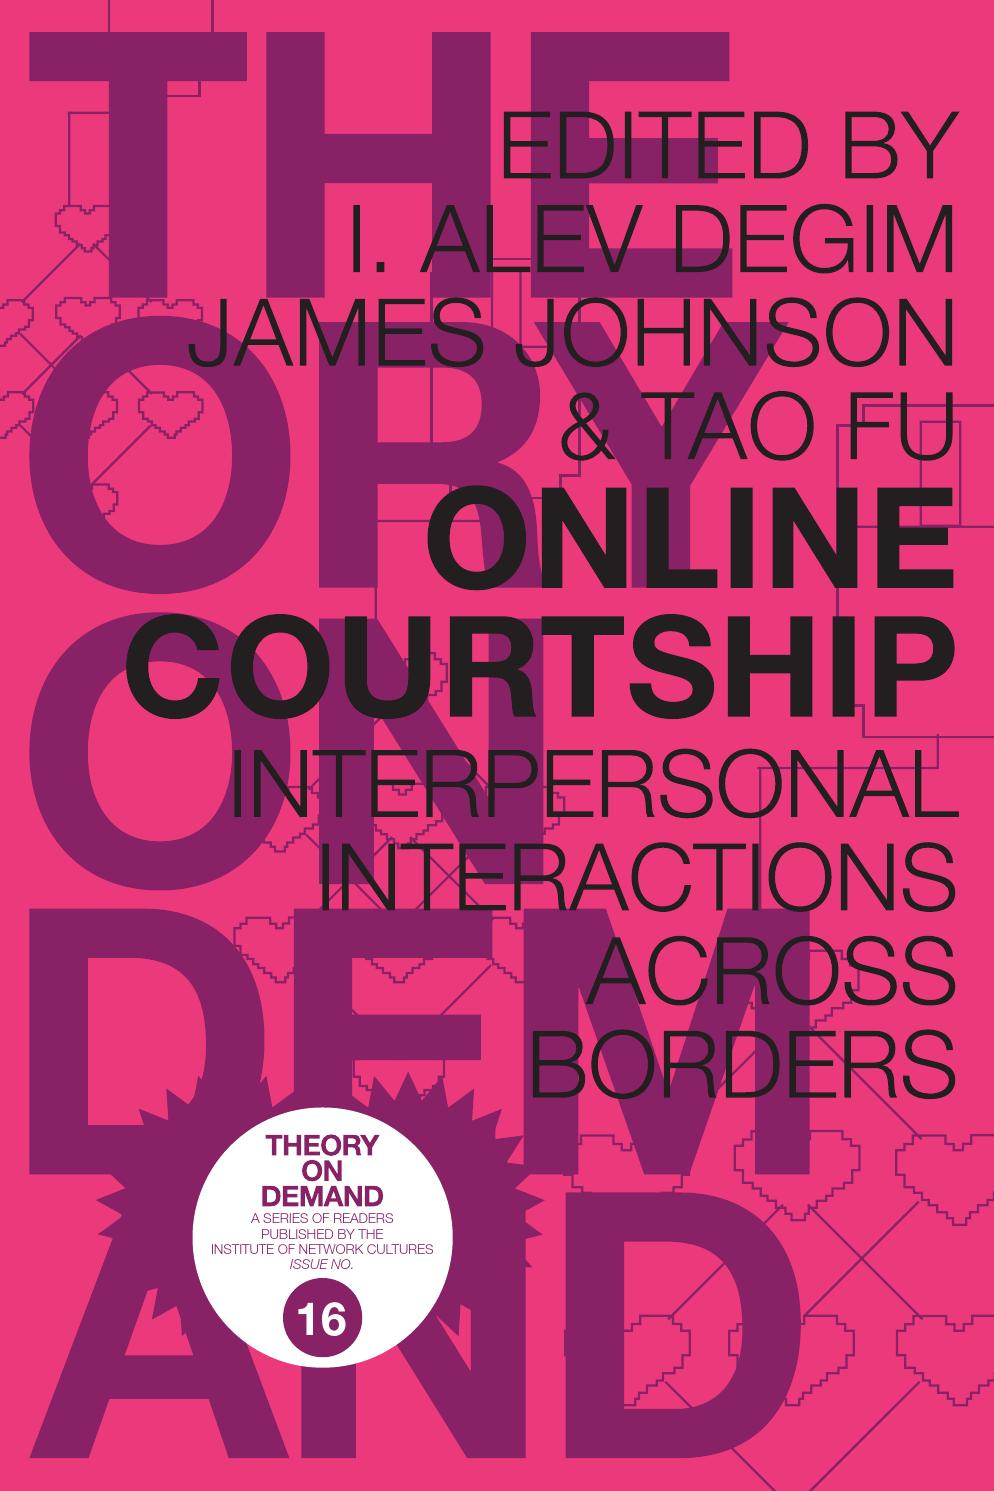 Erica Owens The Sociology Of Love Courtship And Hookup